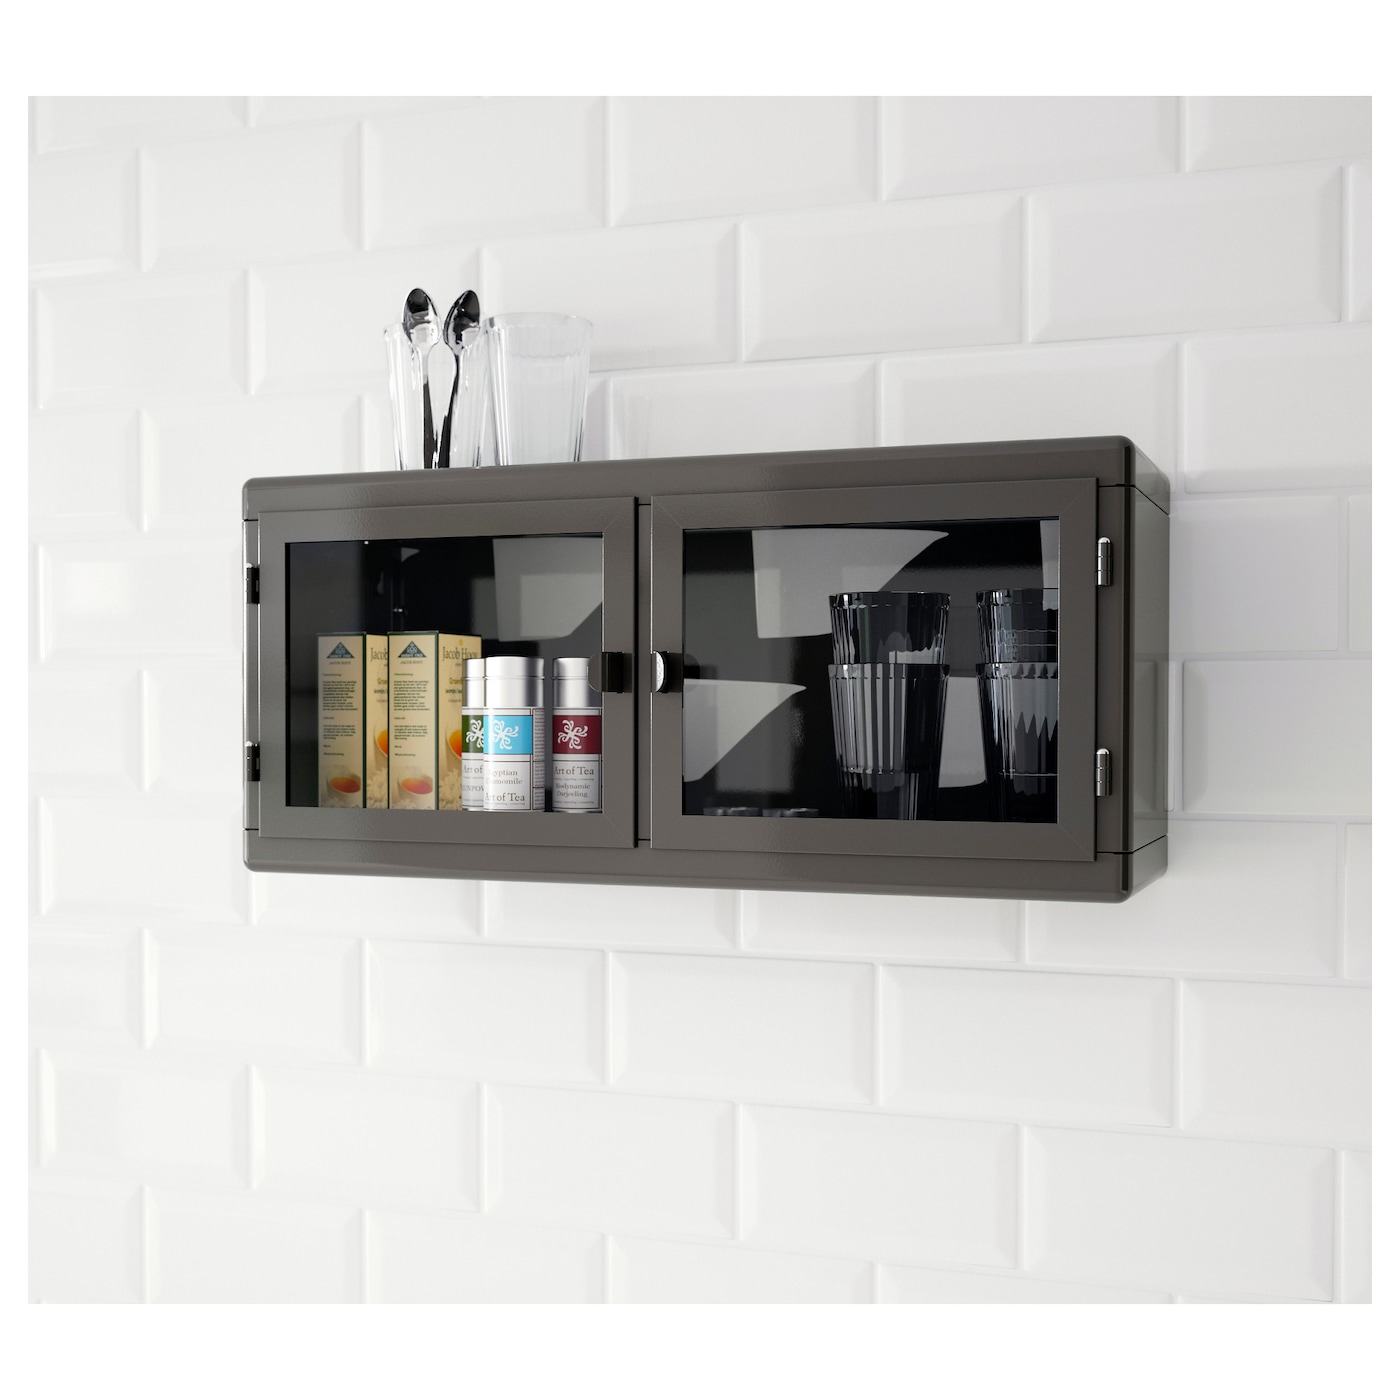 R Skog Wall Cabinet Dark Grey Glass 60x27 Cm Ikea